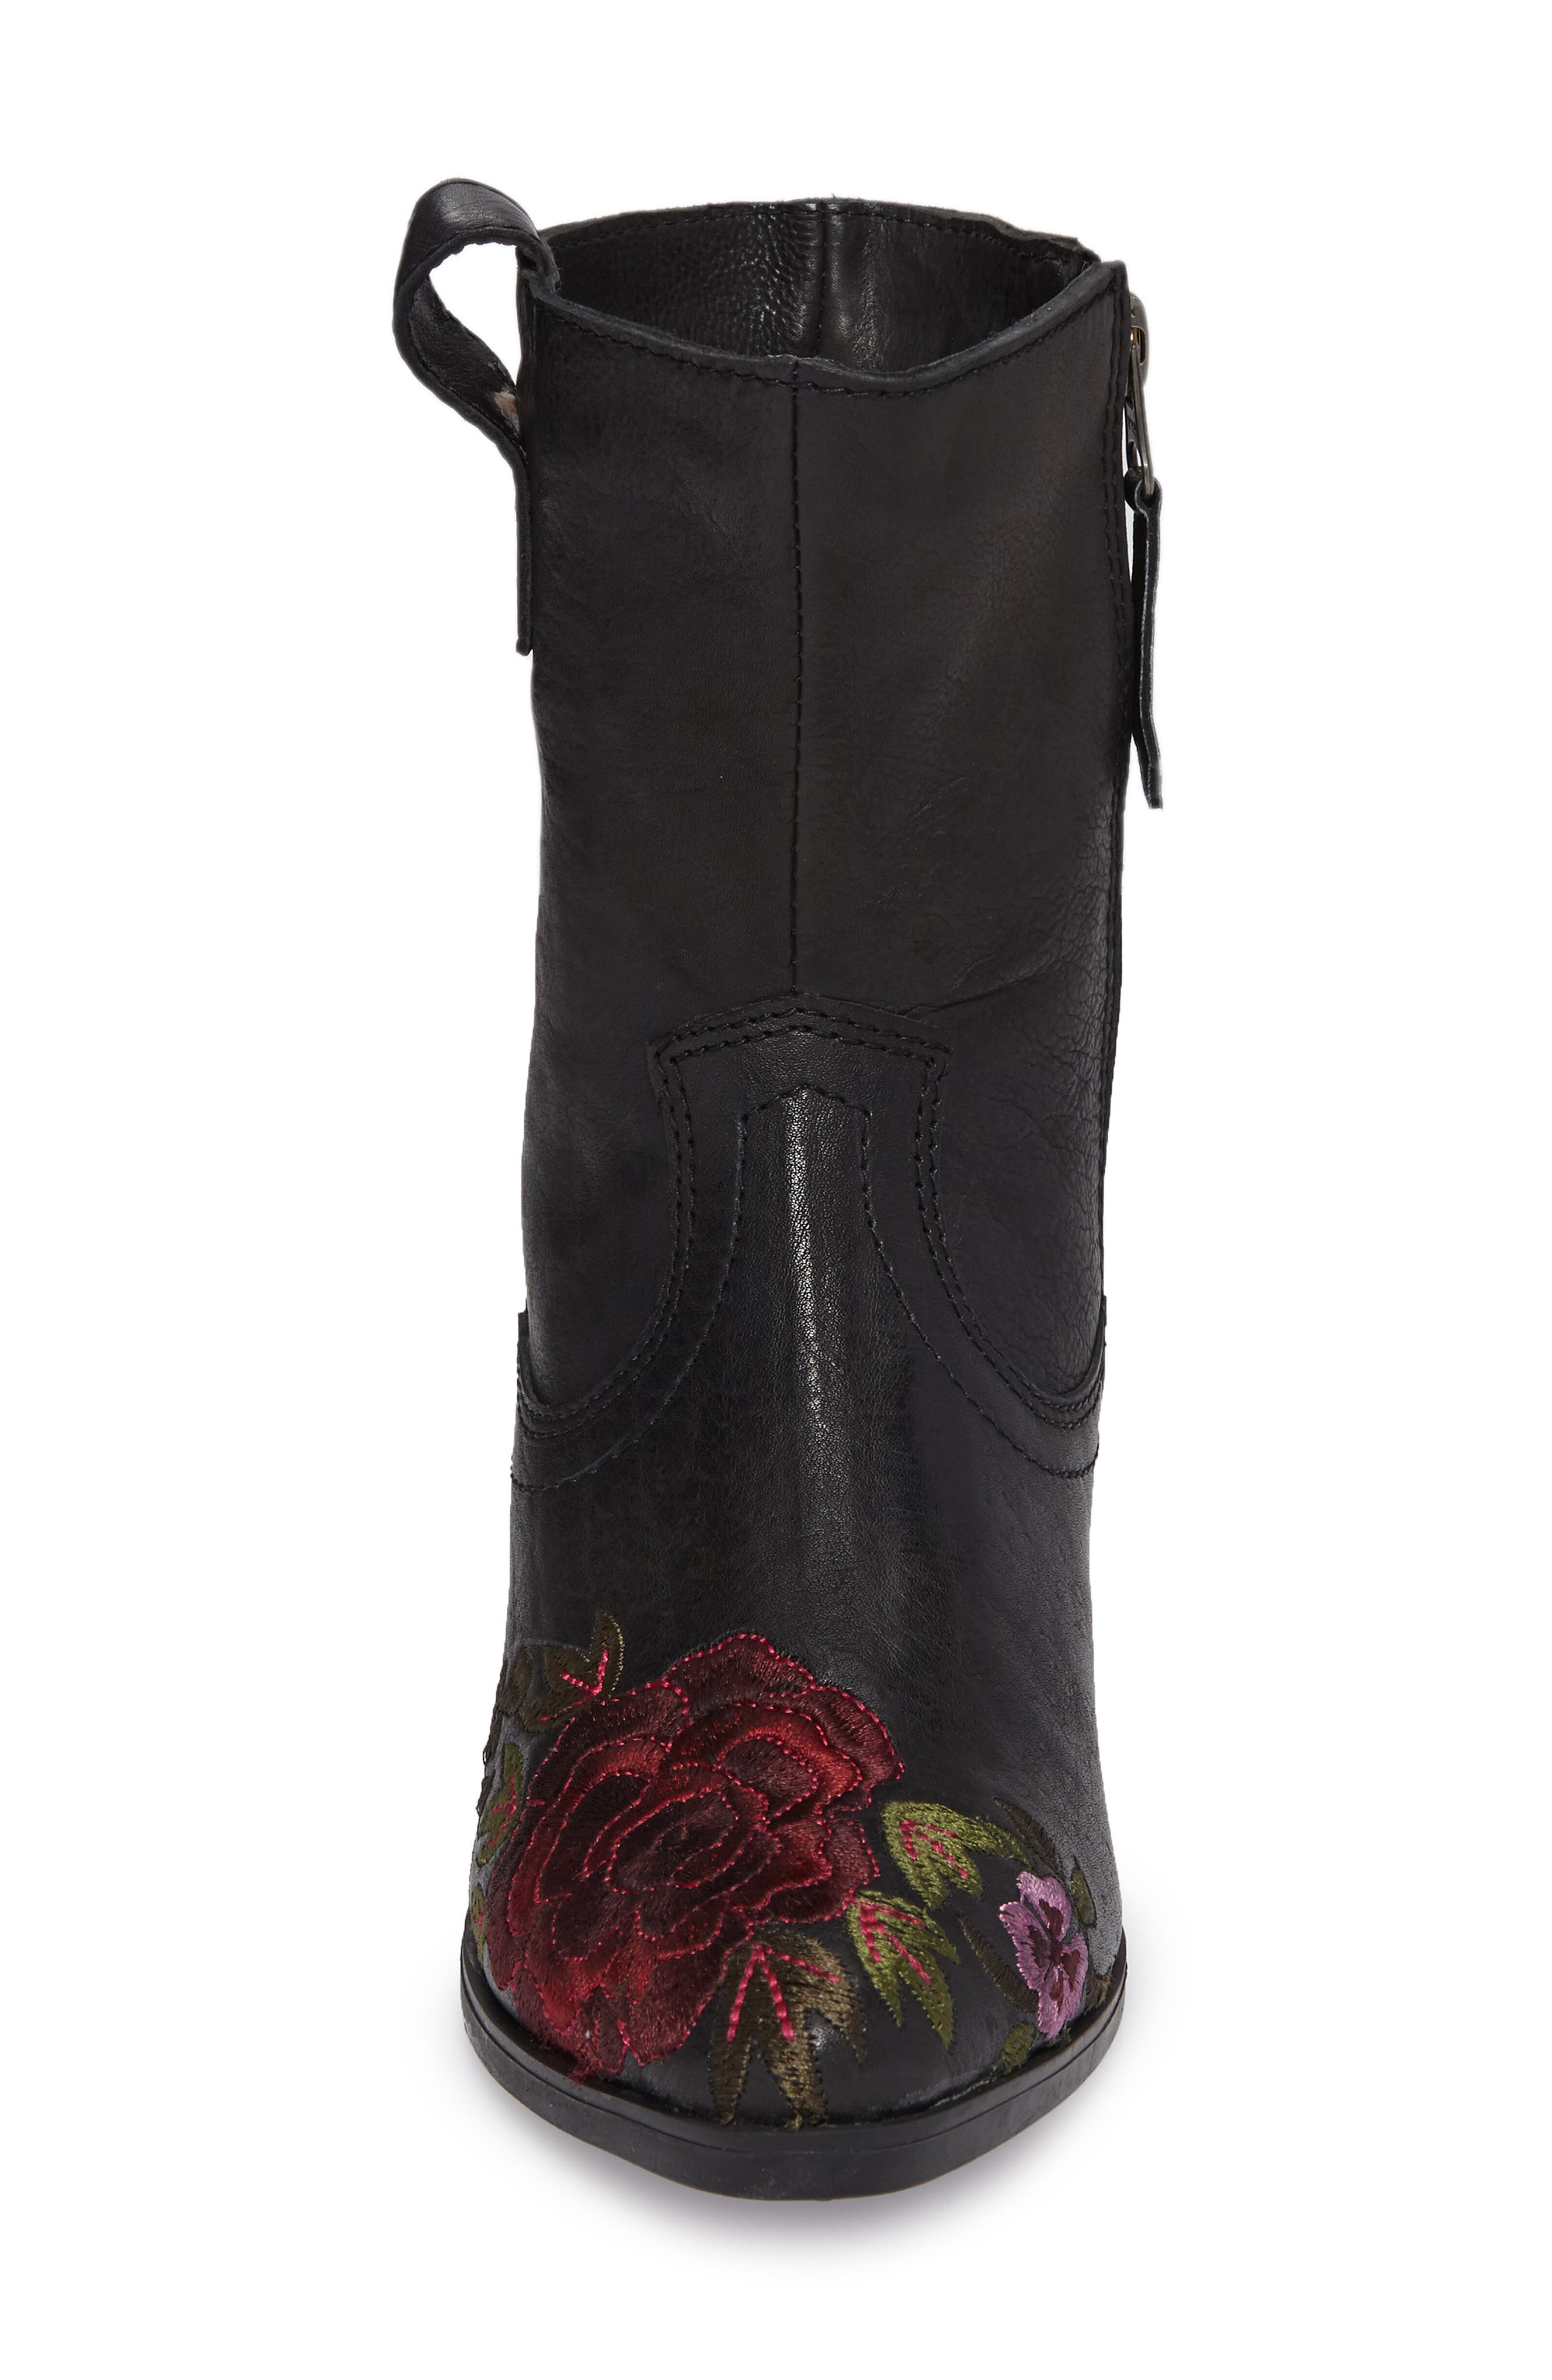 Shallot Floral Embroidered Bootie,                             Alternate thumbnail 4, color,                             Black Leather